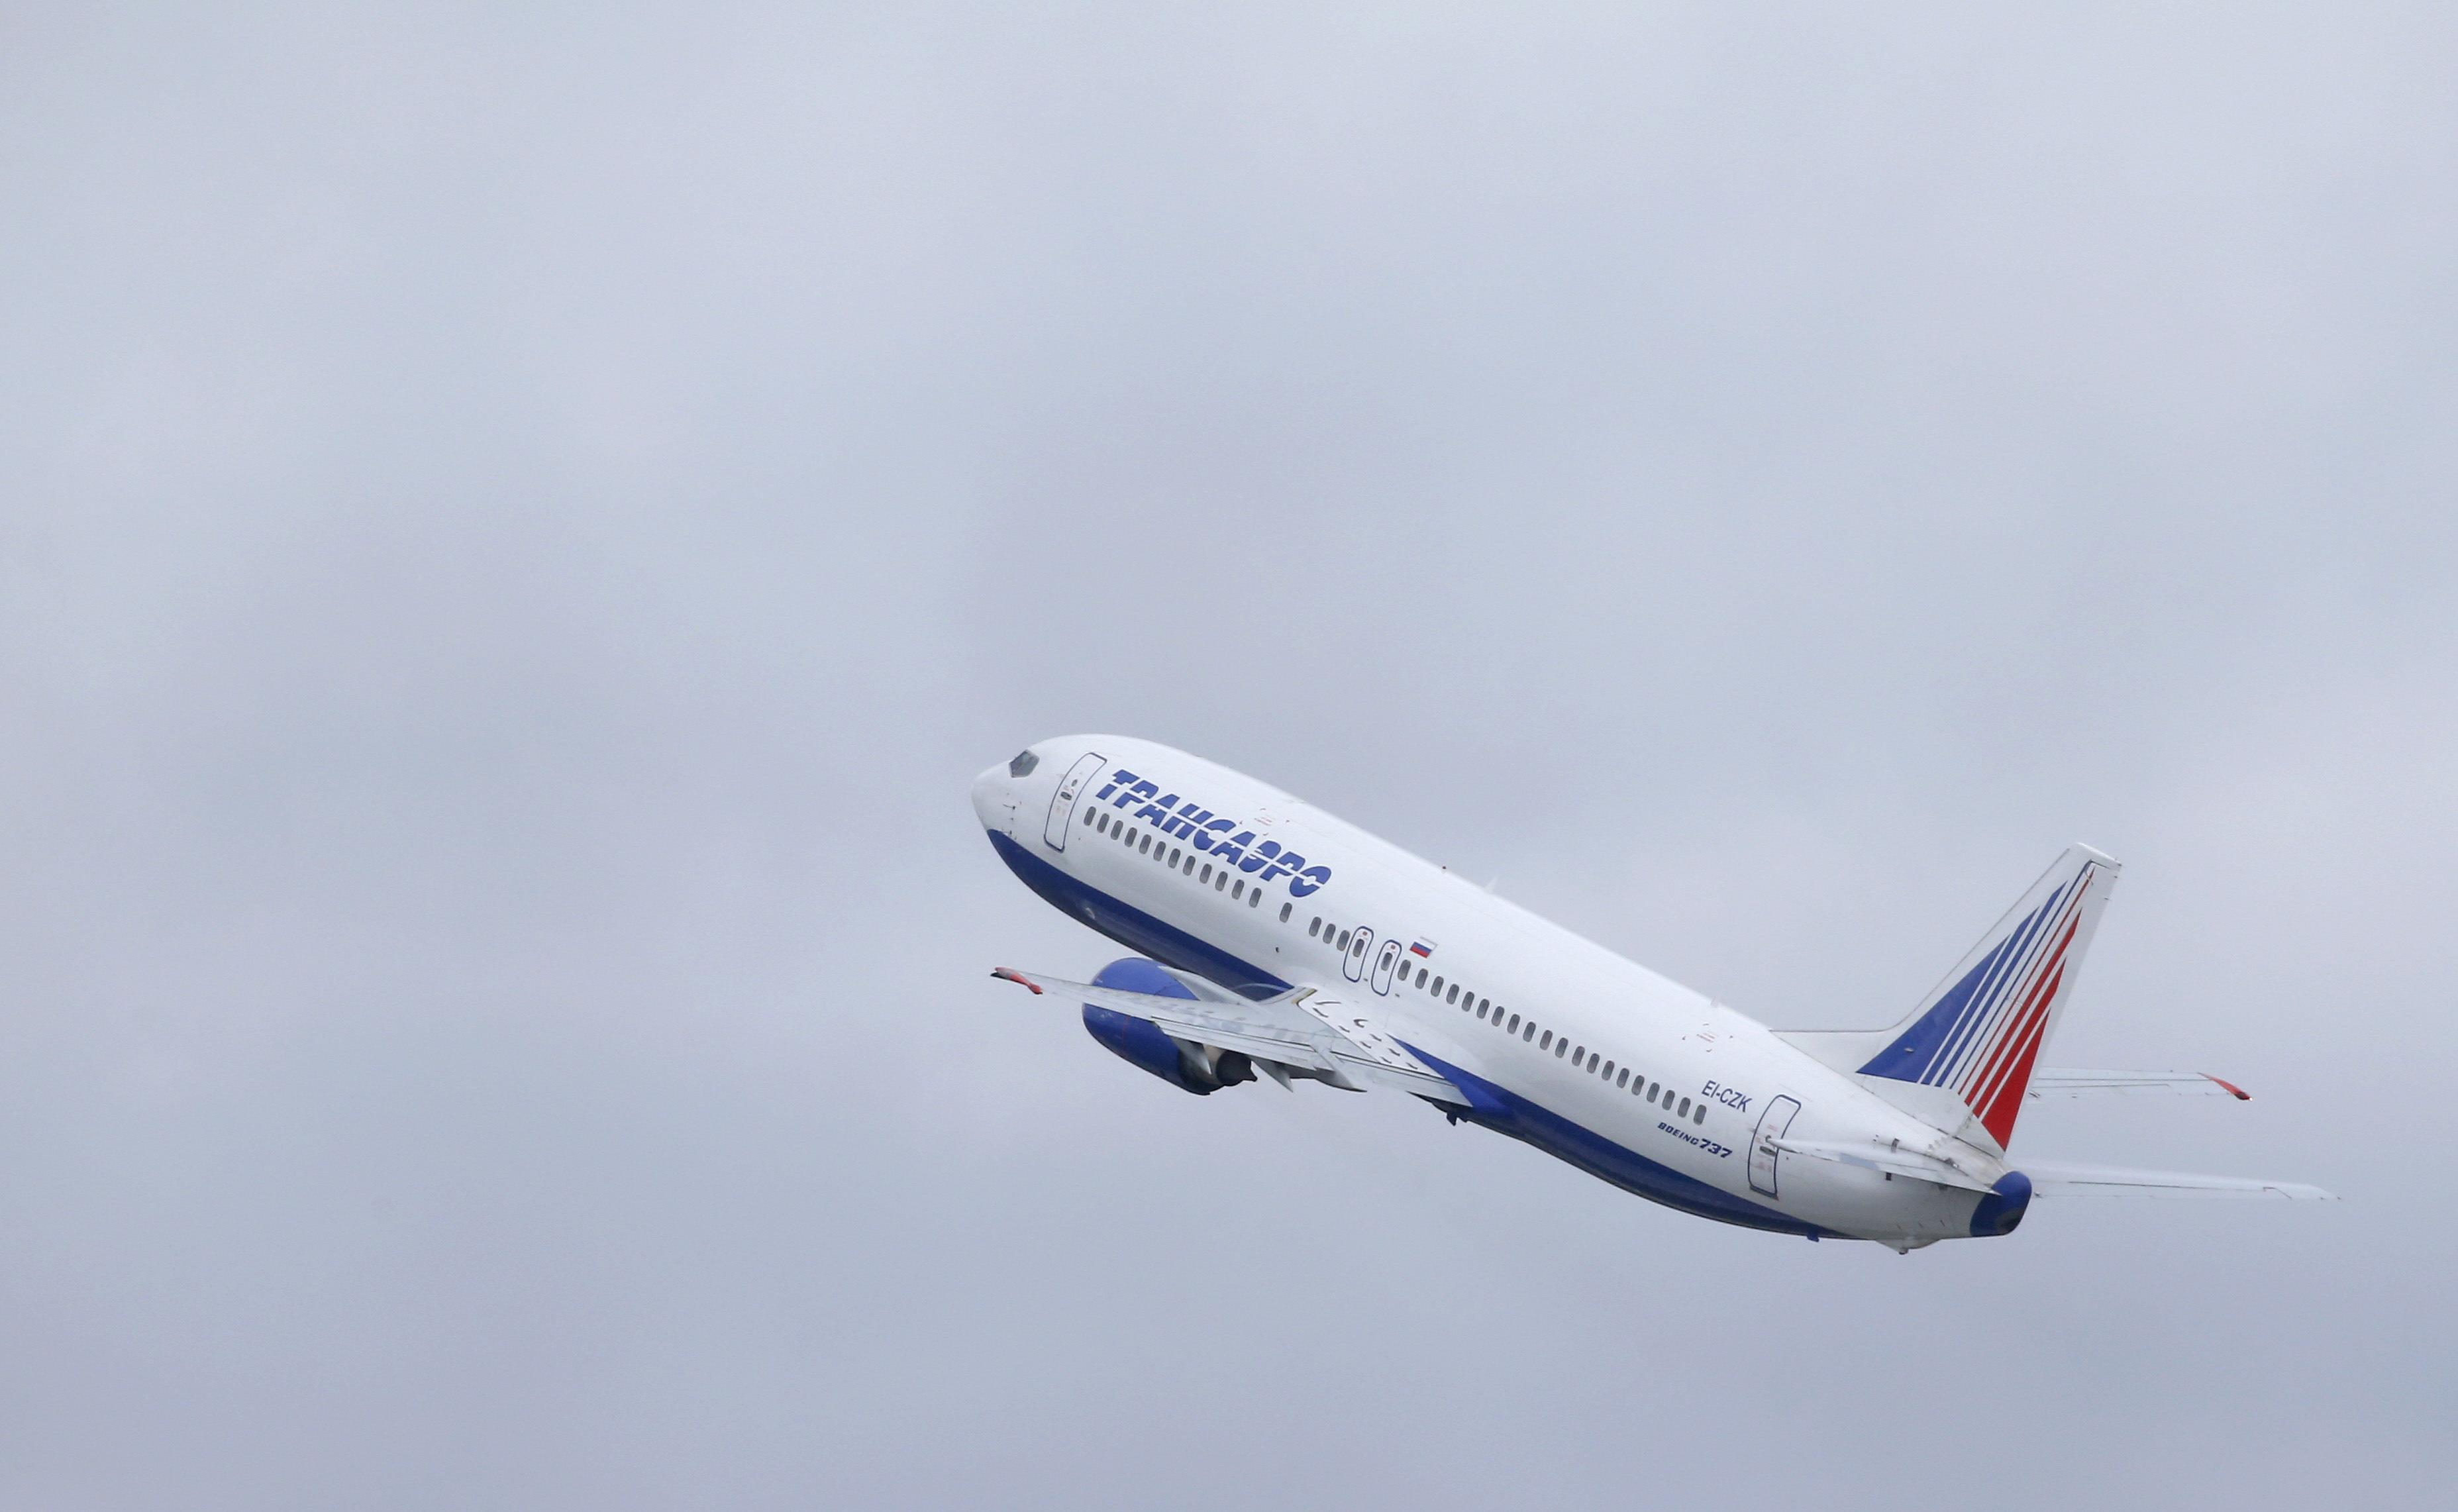 An aircraft takes off from Moscow's main airport